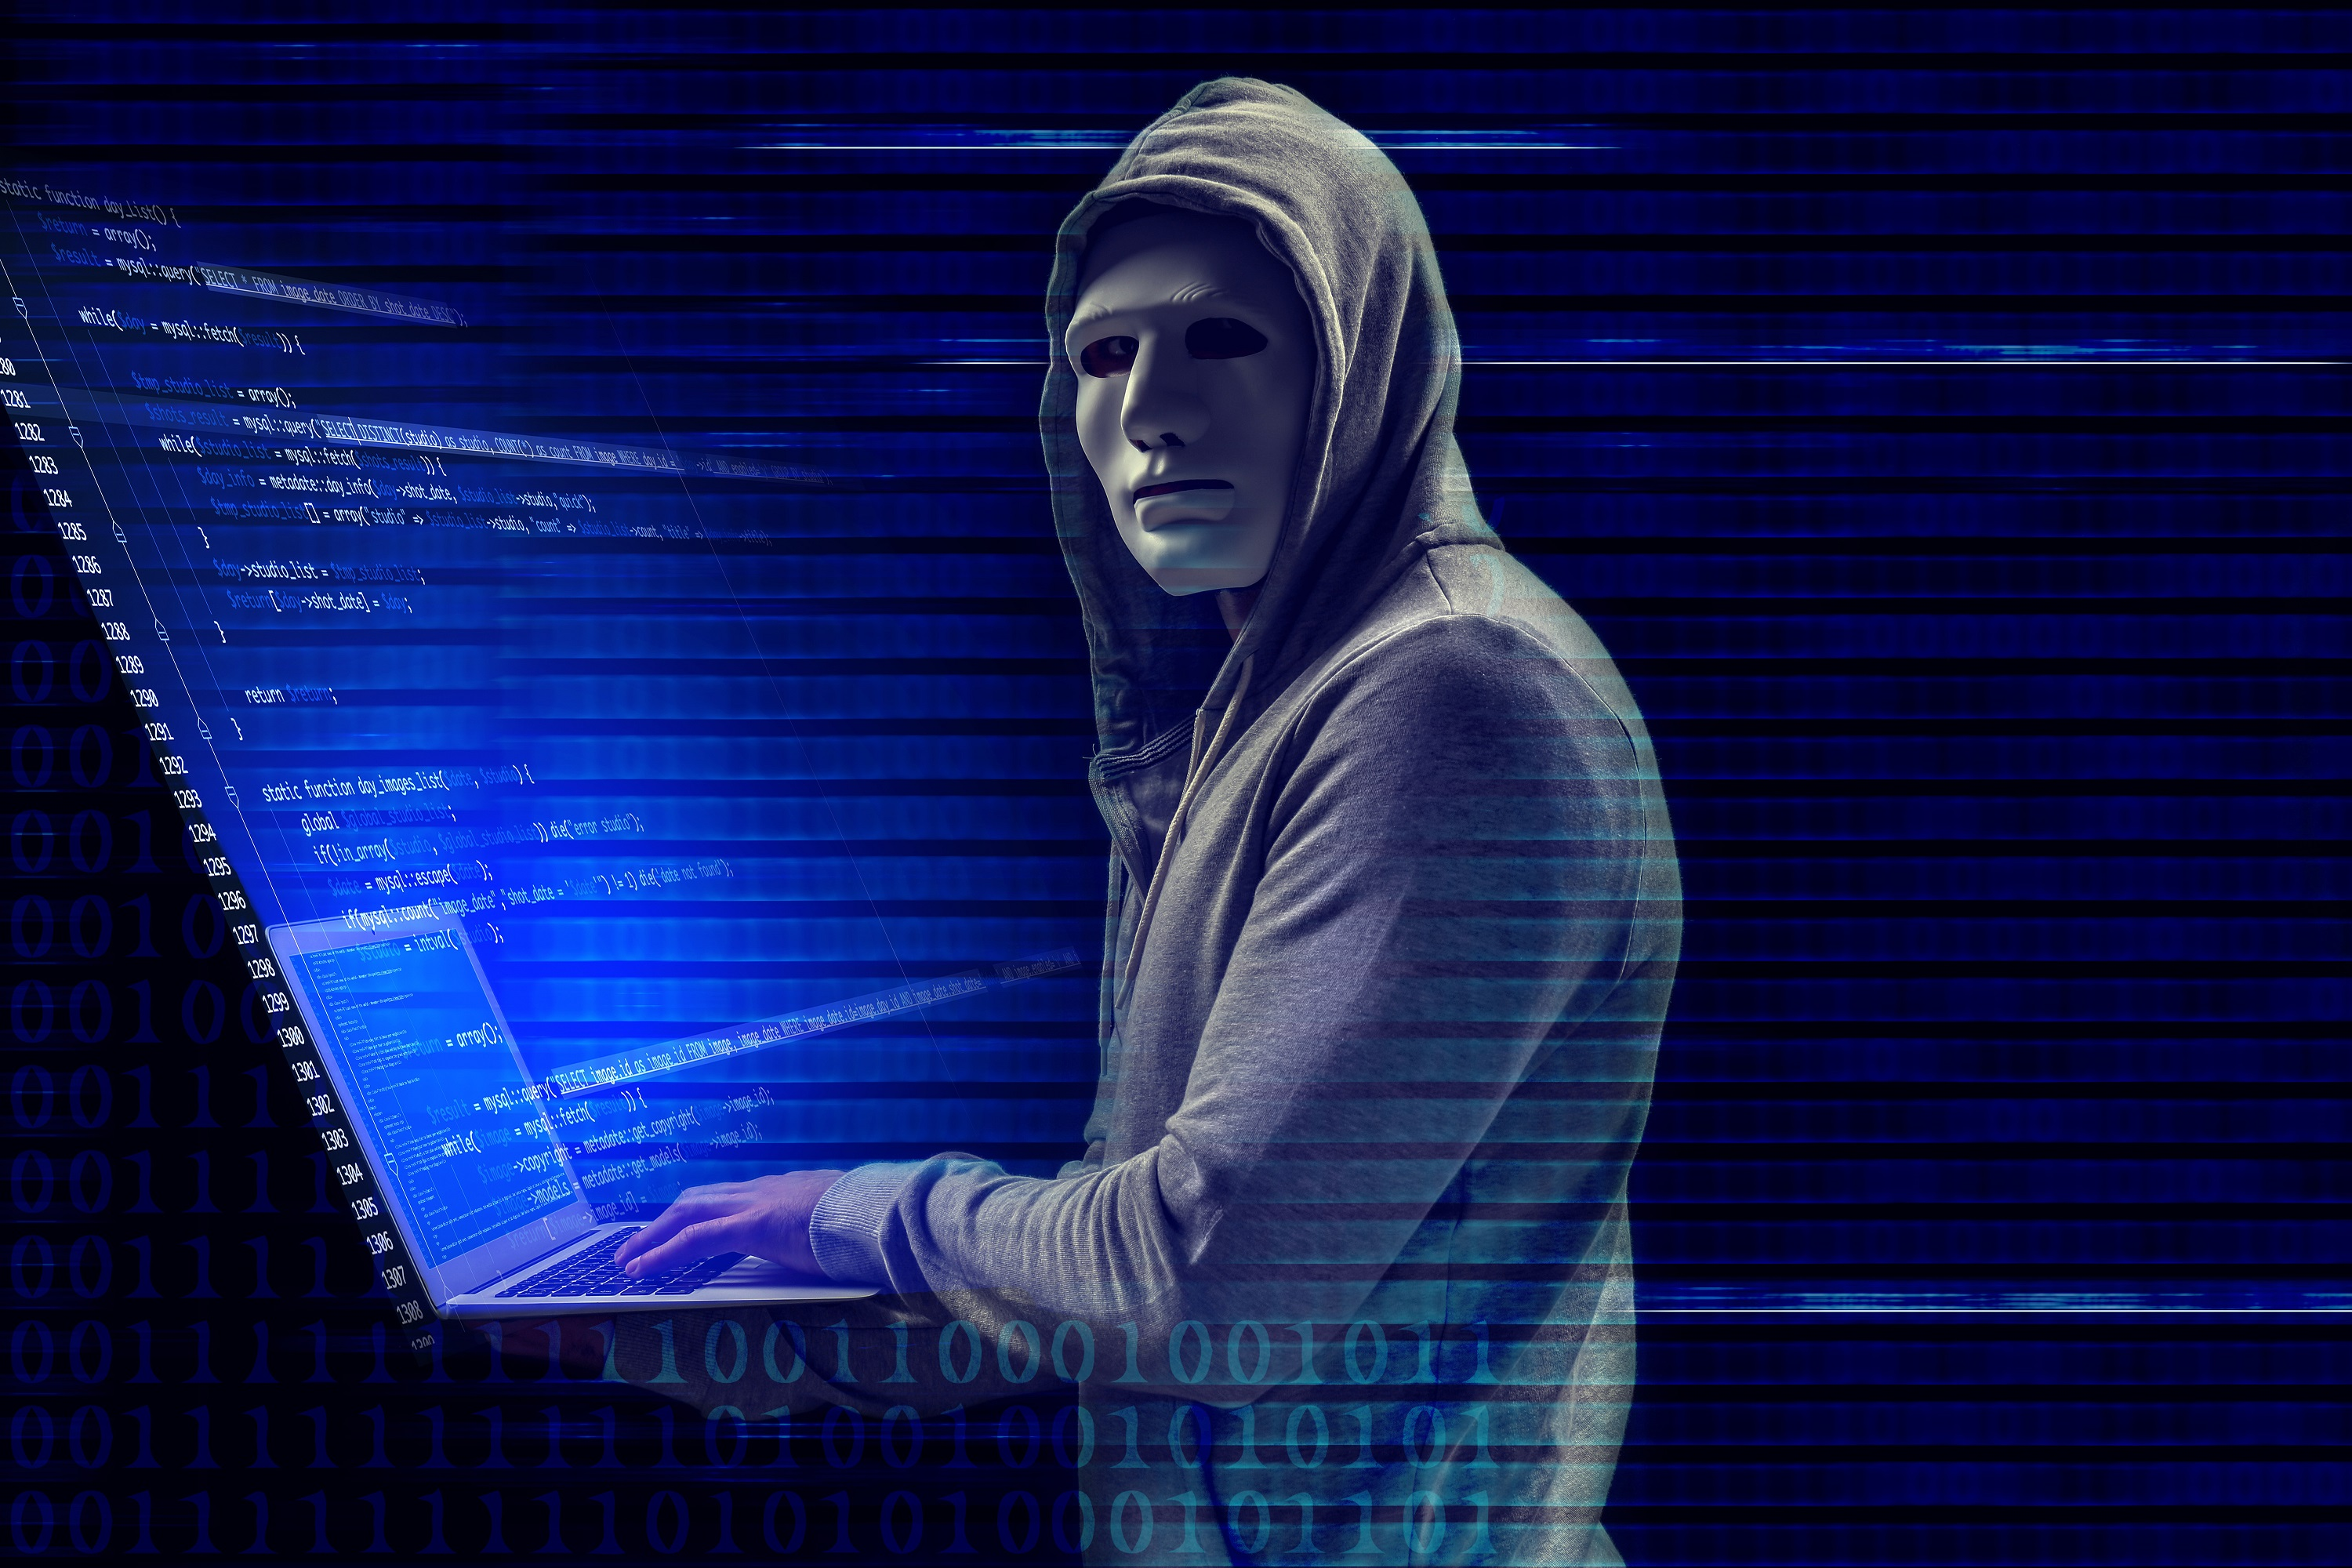 T-Mobile 'Hackers Want BTC 6' for Data, US Offers Dark Web USD 10M in Crypto (UPDATED)